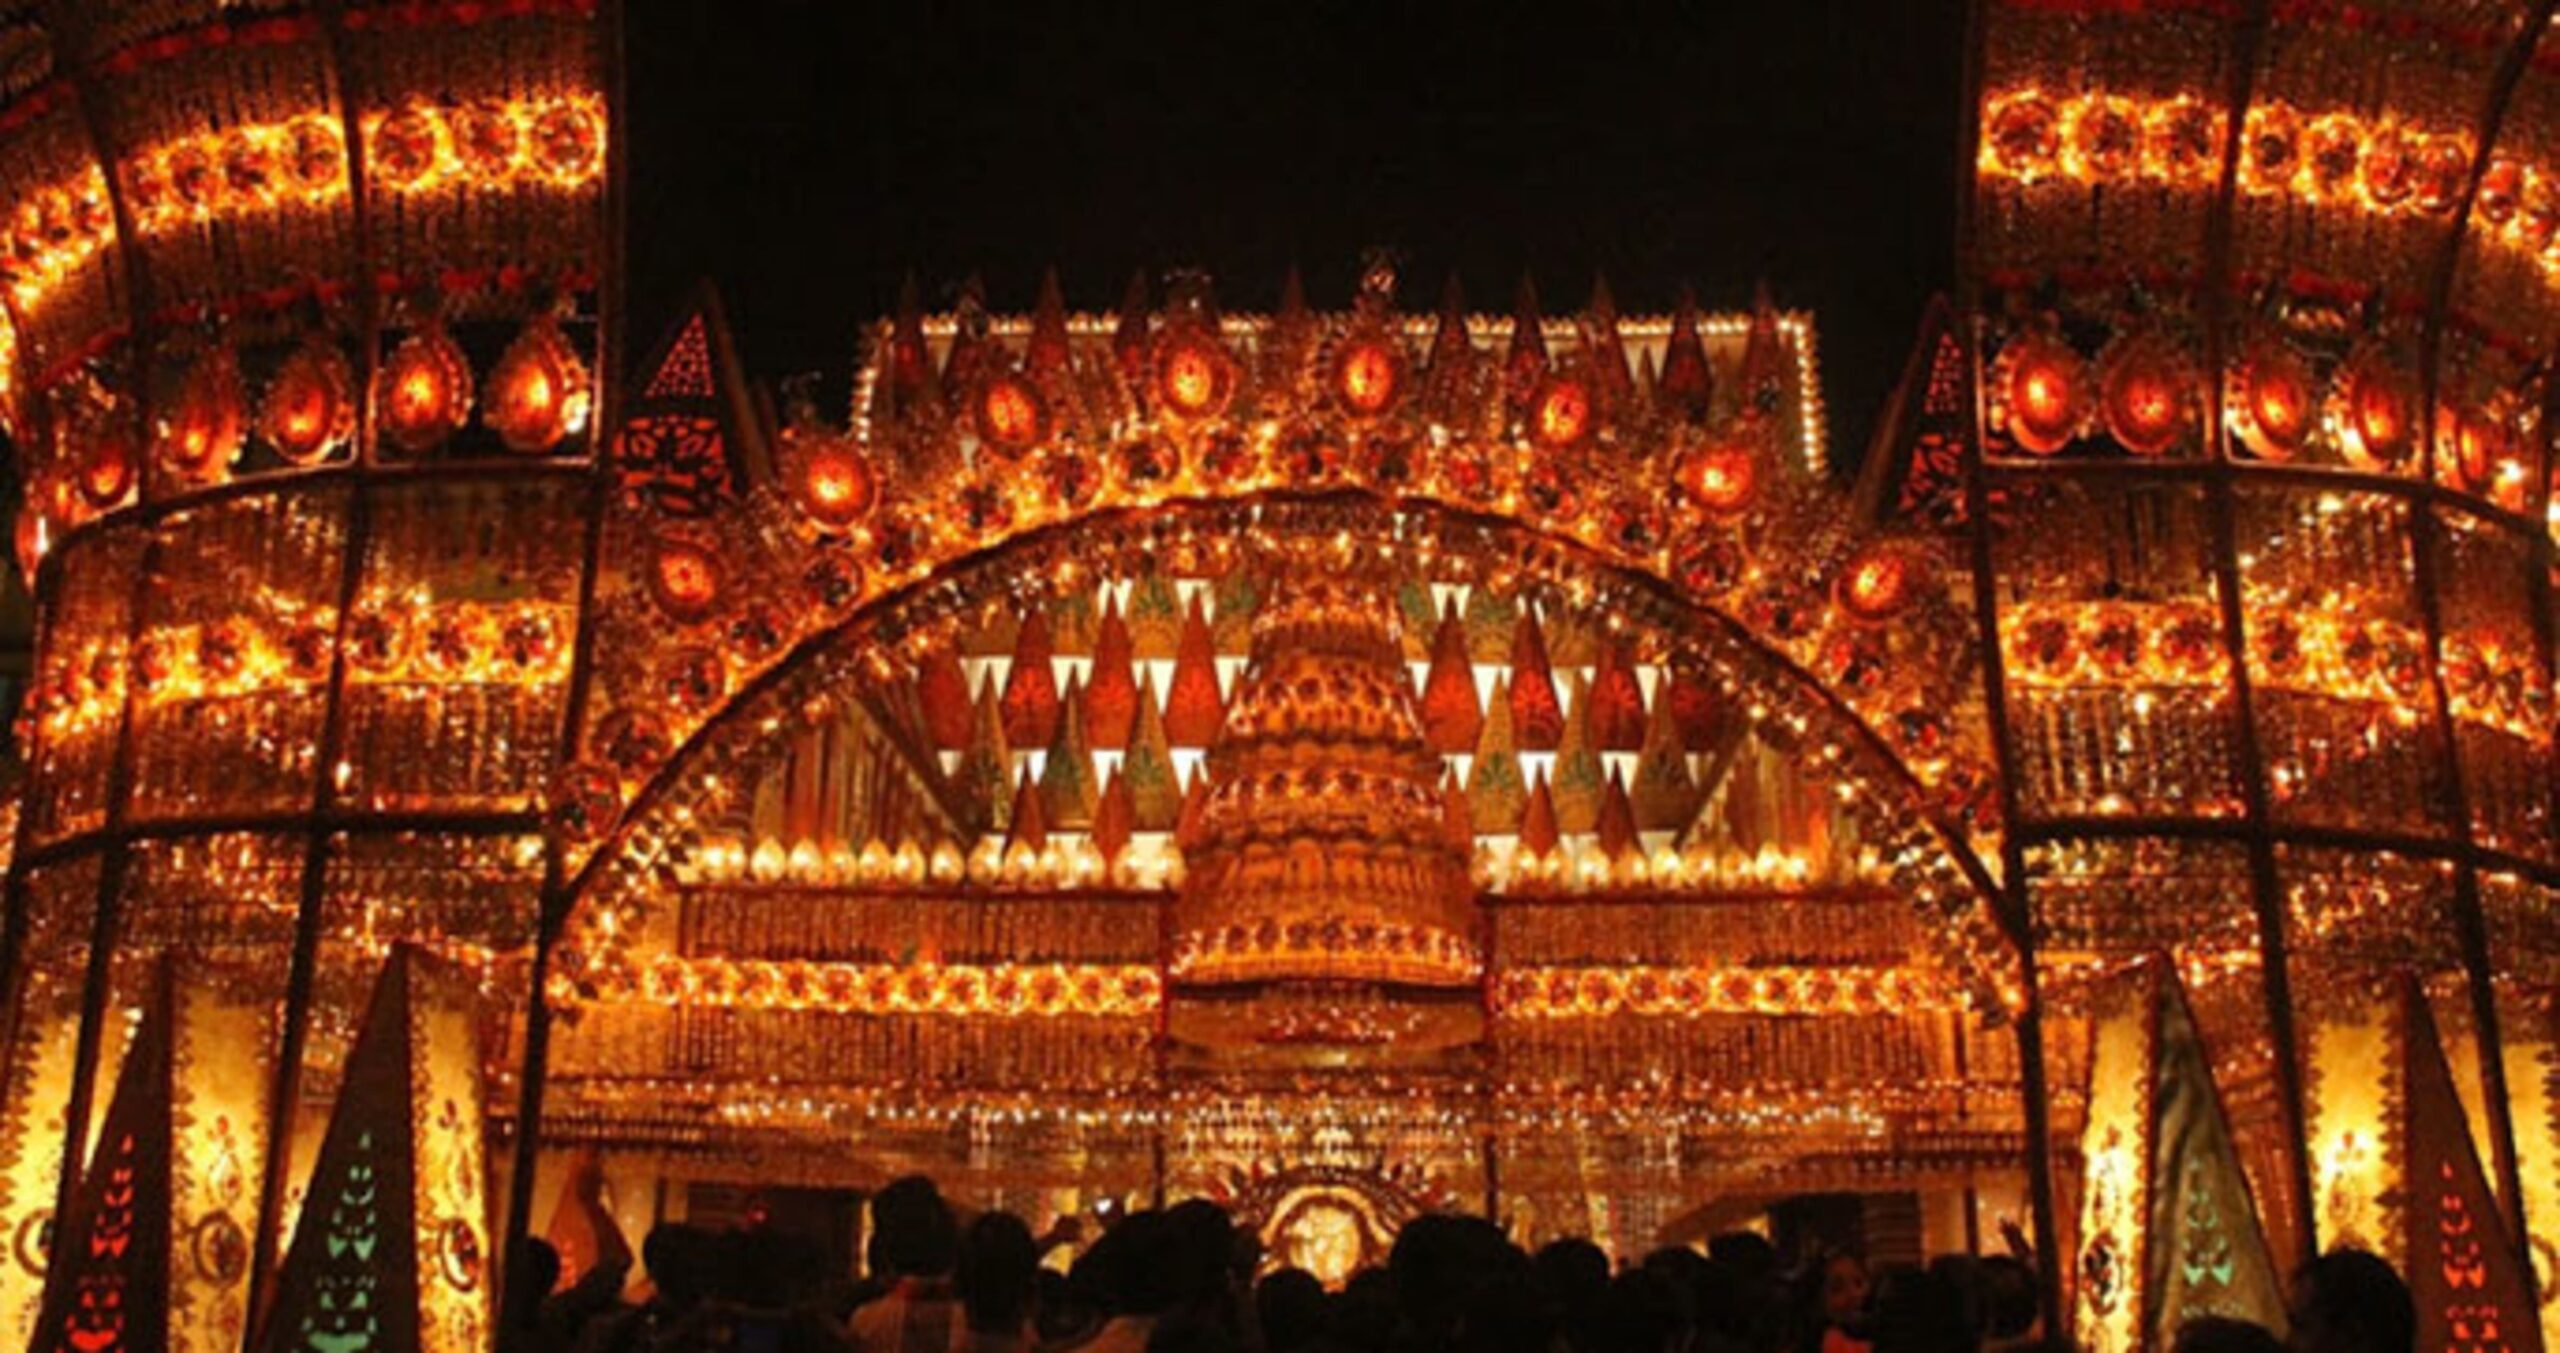 It's not a Palace. It's a magnificently illuminated Pandal, a temporary structure created for Durga Puja | PC - tourmyindia.com